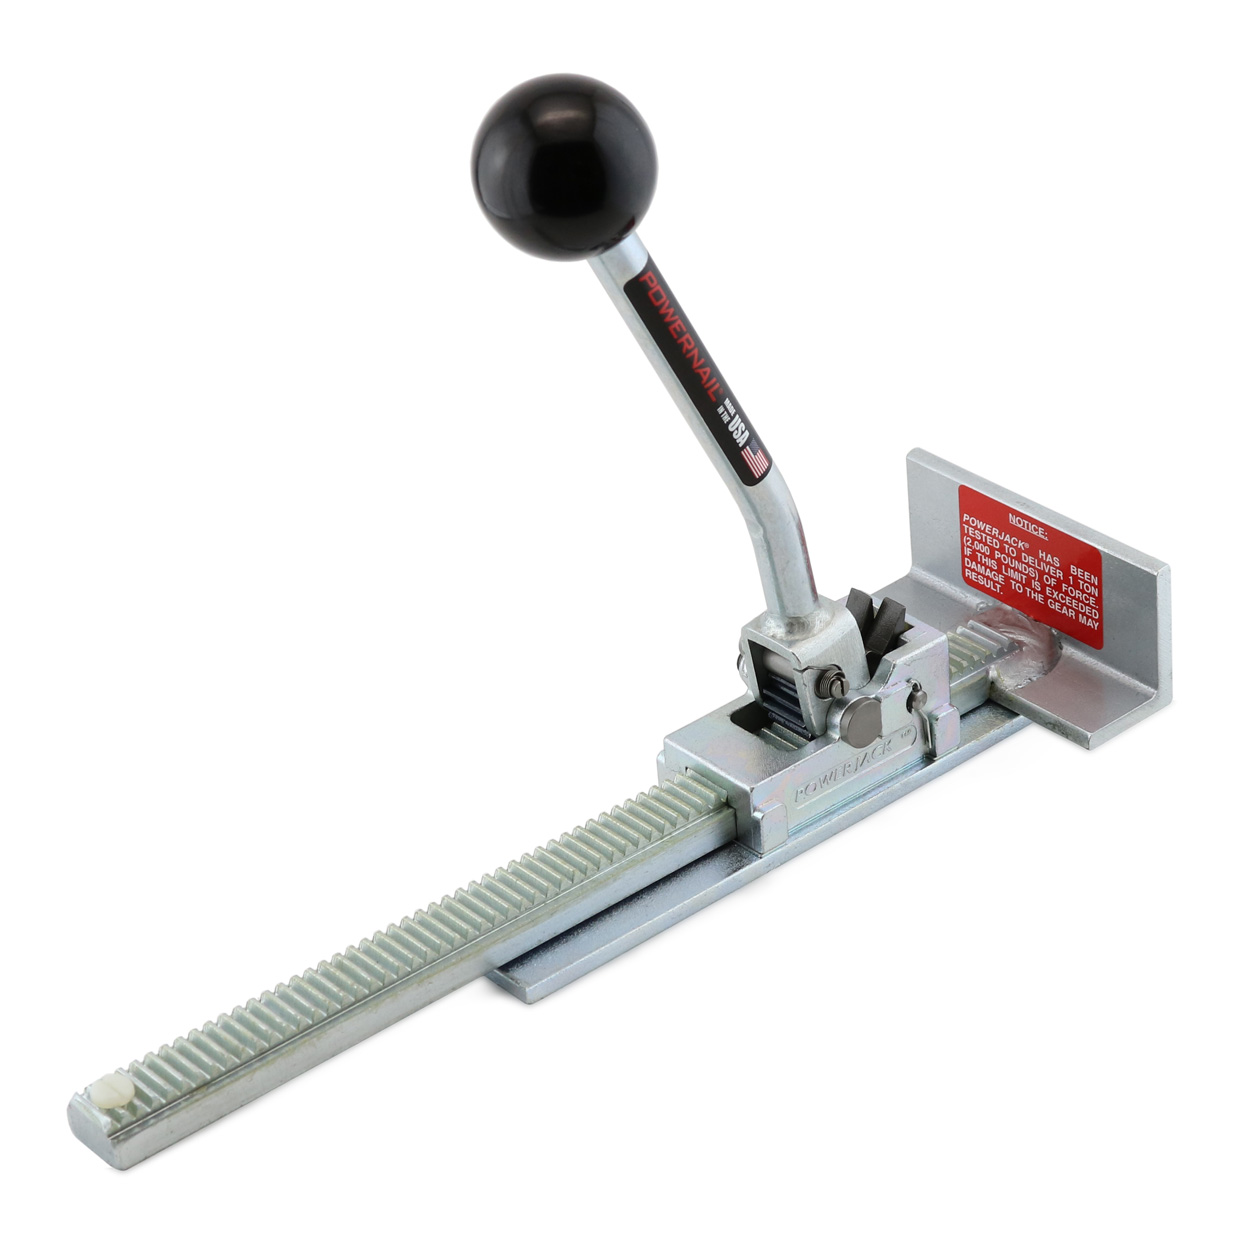 Powerjack 100 – Hardwood Flooring Positioner